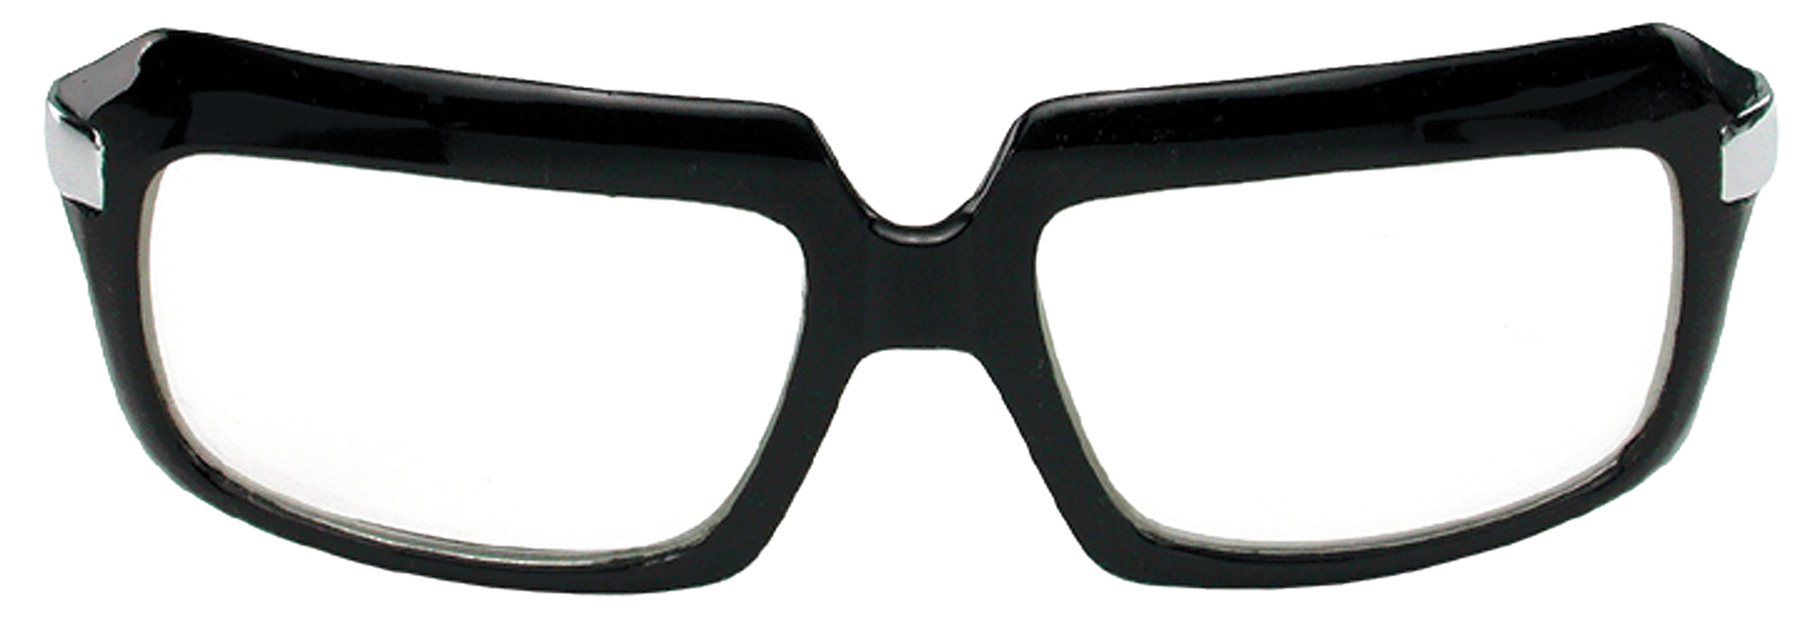 Featured Image for Black 80s Scratcher Glasses